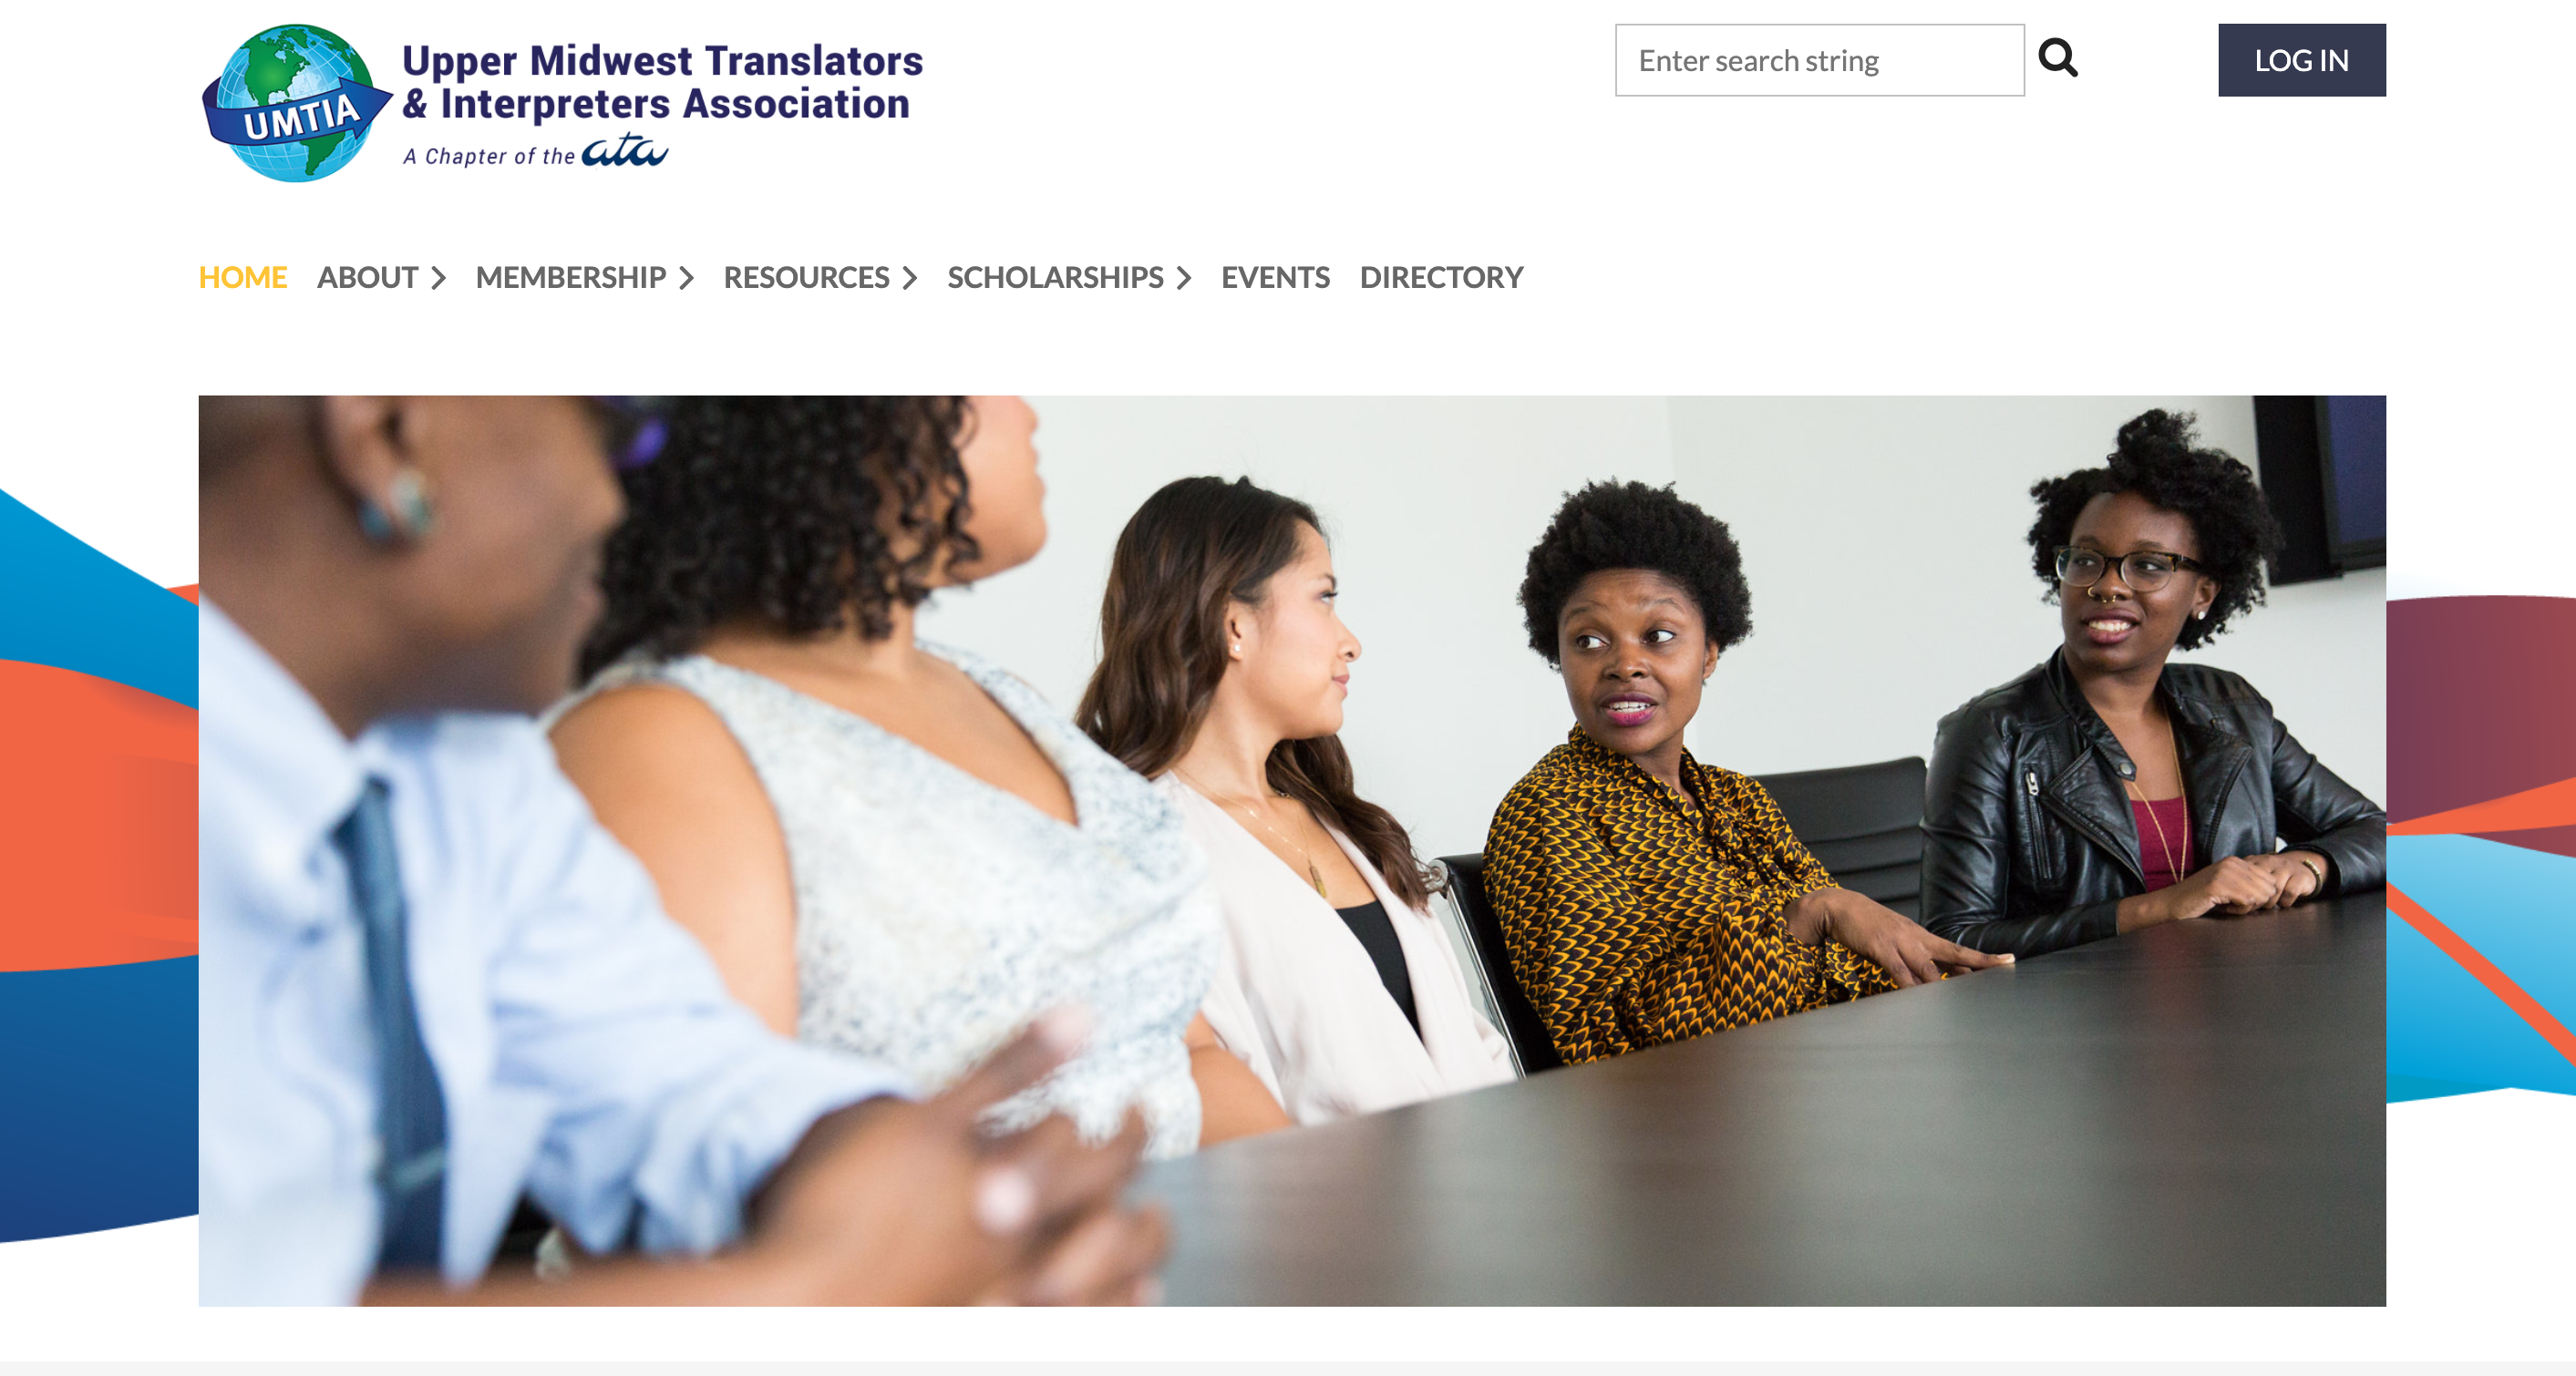 Upper Midwest Translators and Interpreters Association website